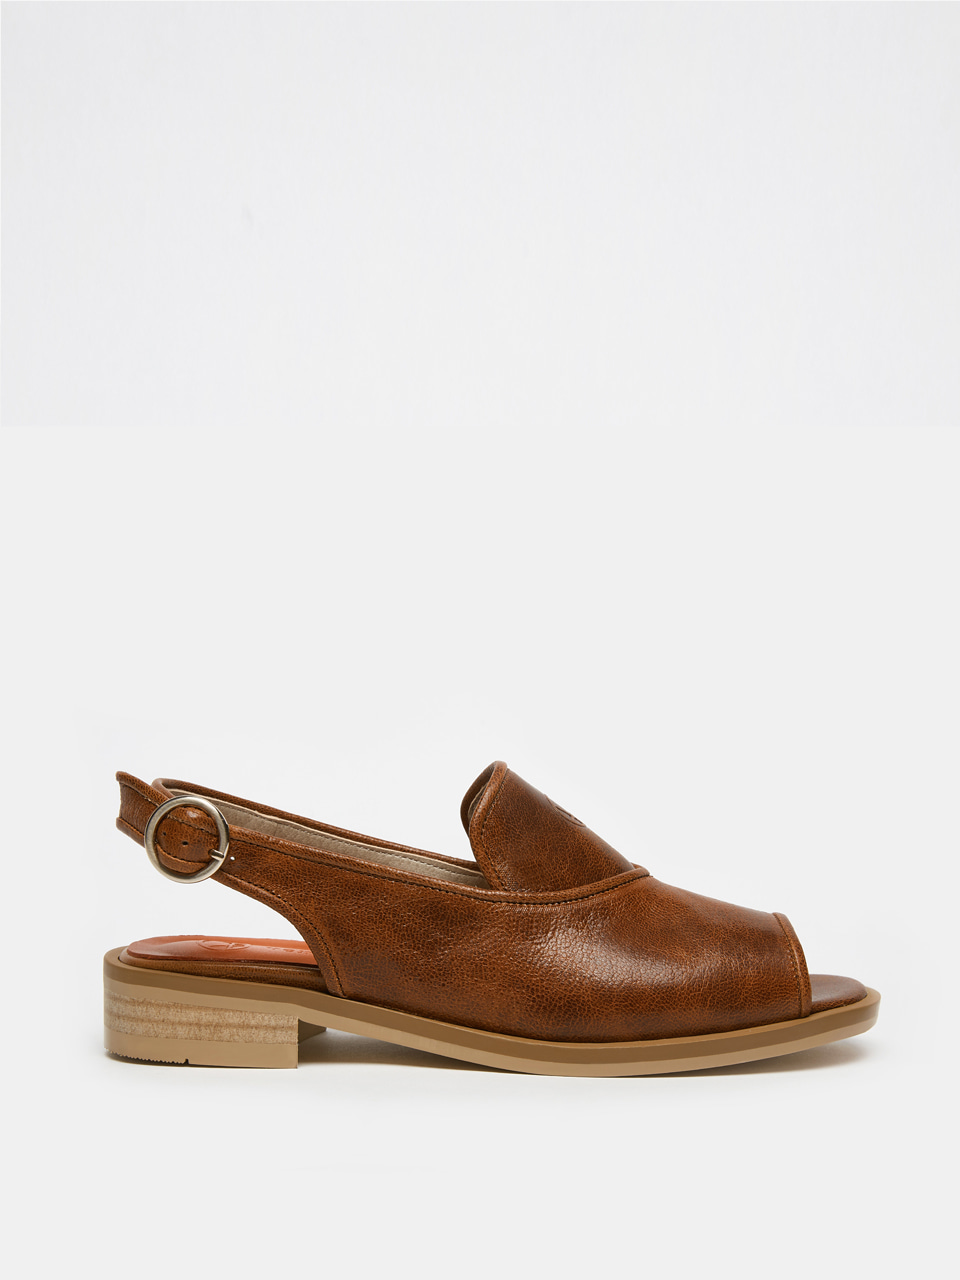 LEAF SANDALS (Brown)